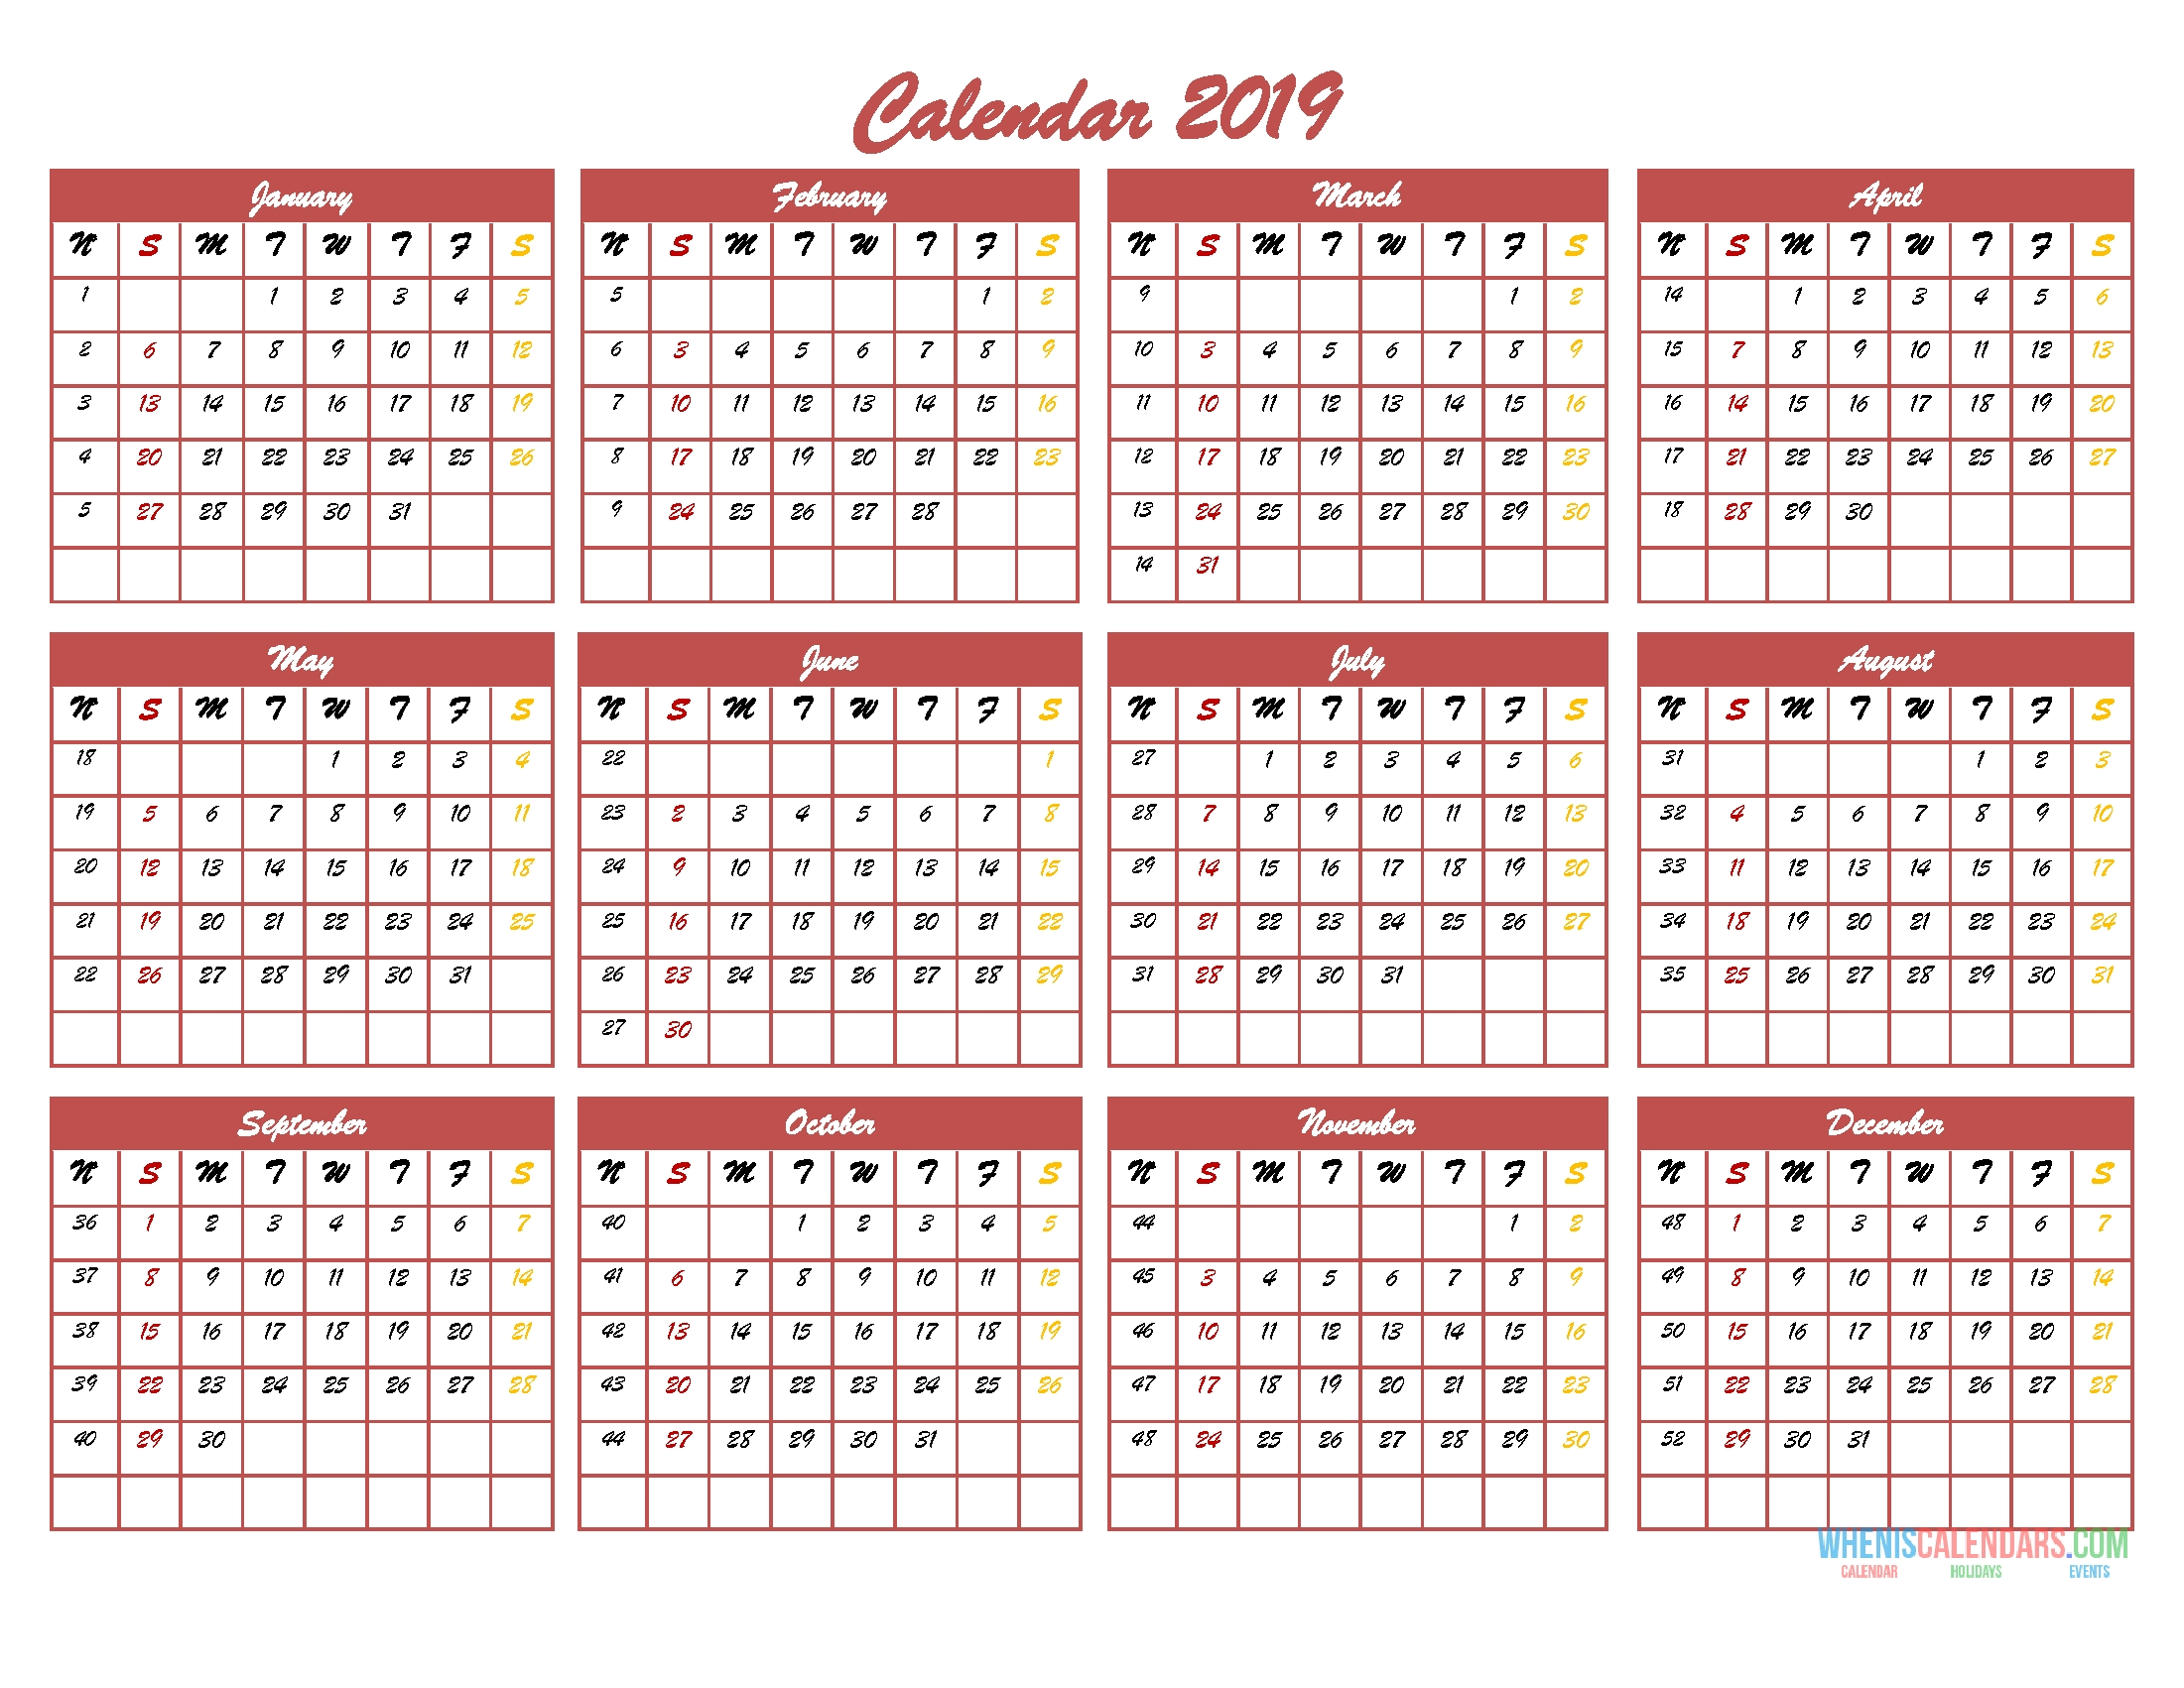 2019 12 Month Calendar Template In One Page Pdf, Image, Excel | Free inside 12 Month Calendar On One Page